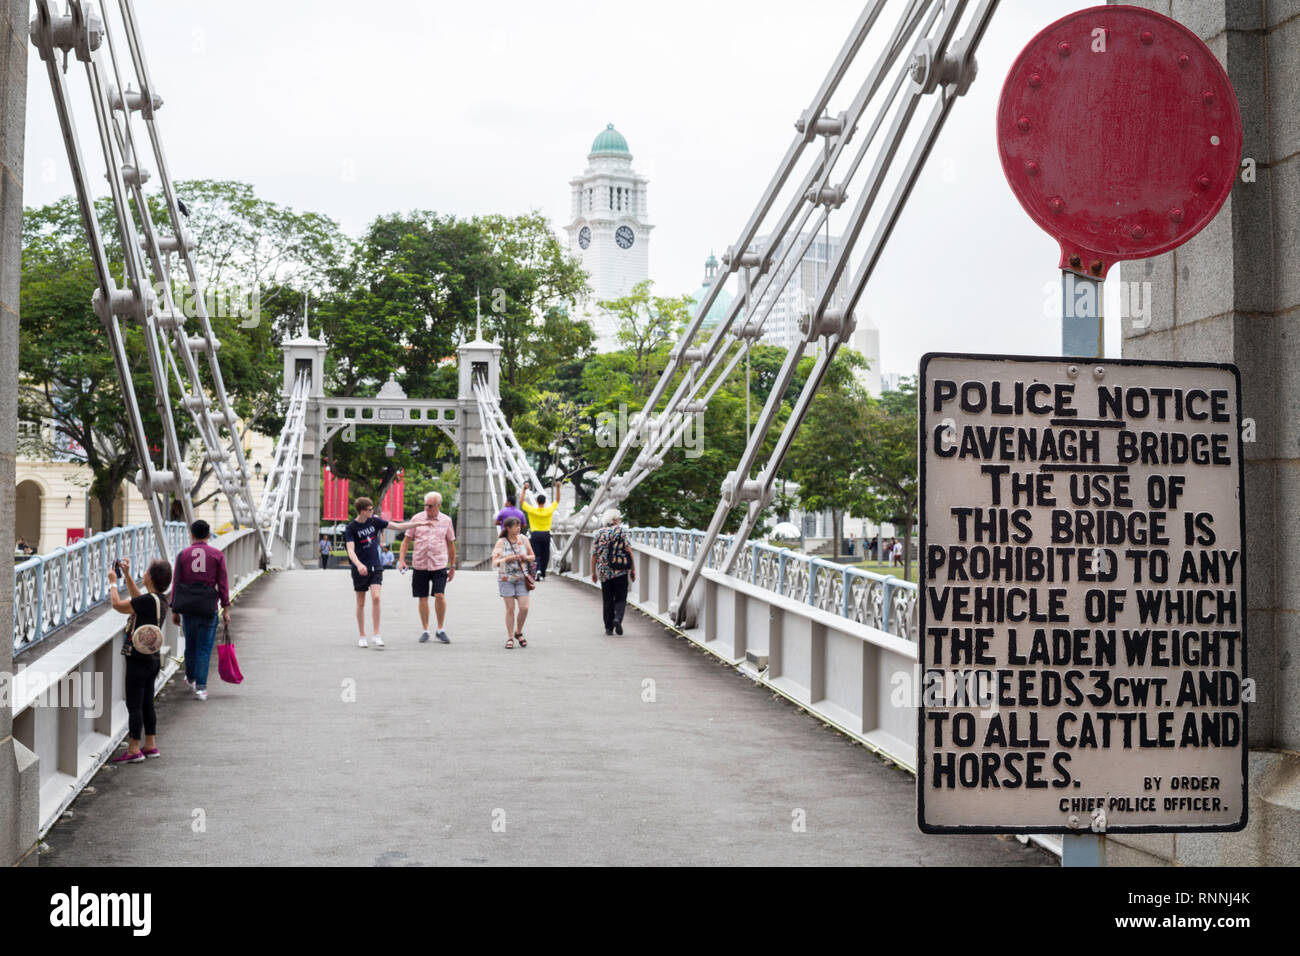 Cavenagh Bridge over Singapore River, forbidden to Cattle and Horses, Singapore. - Stock Image